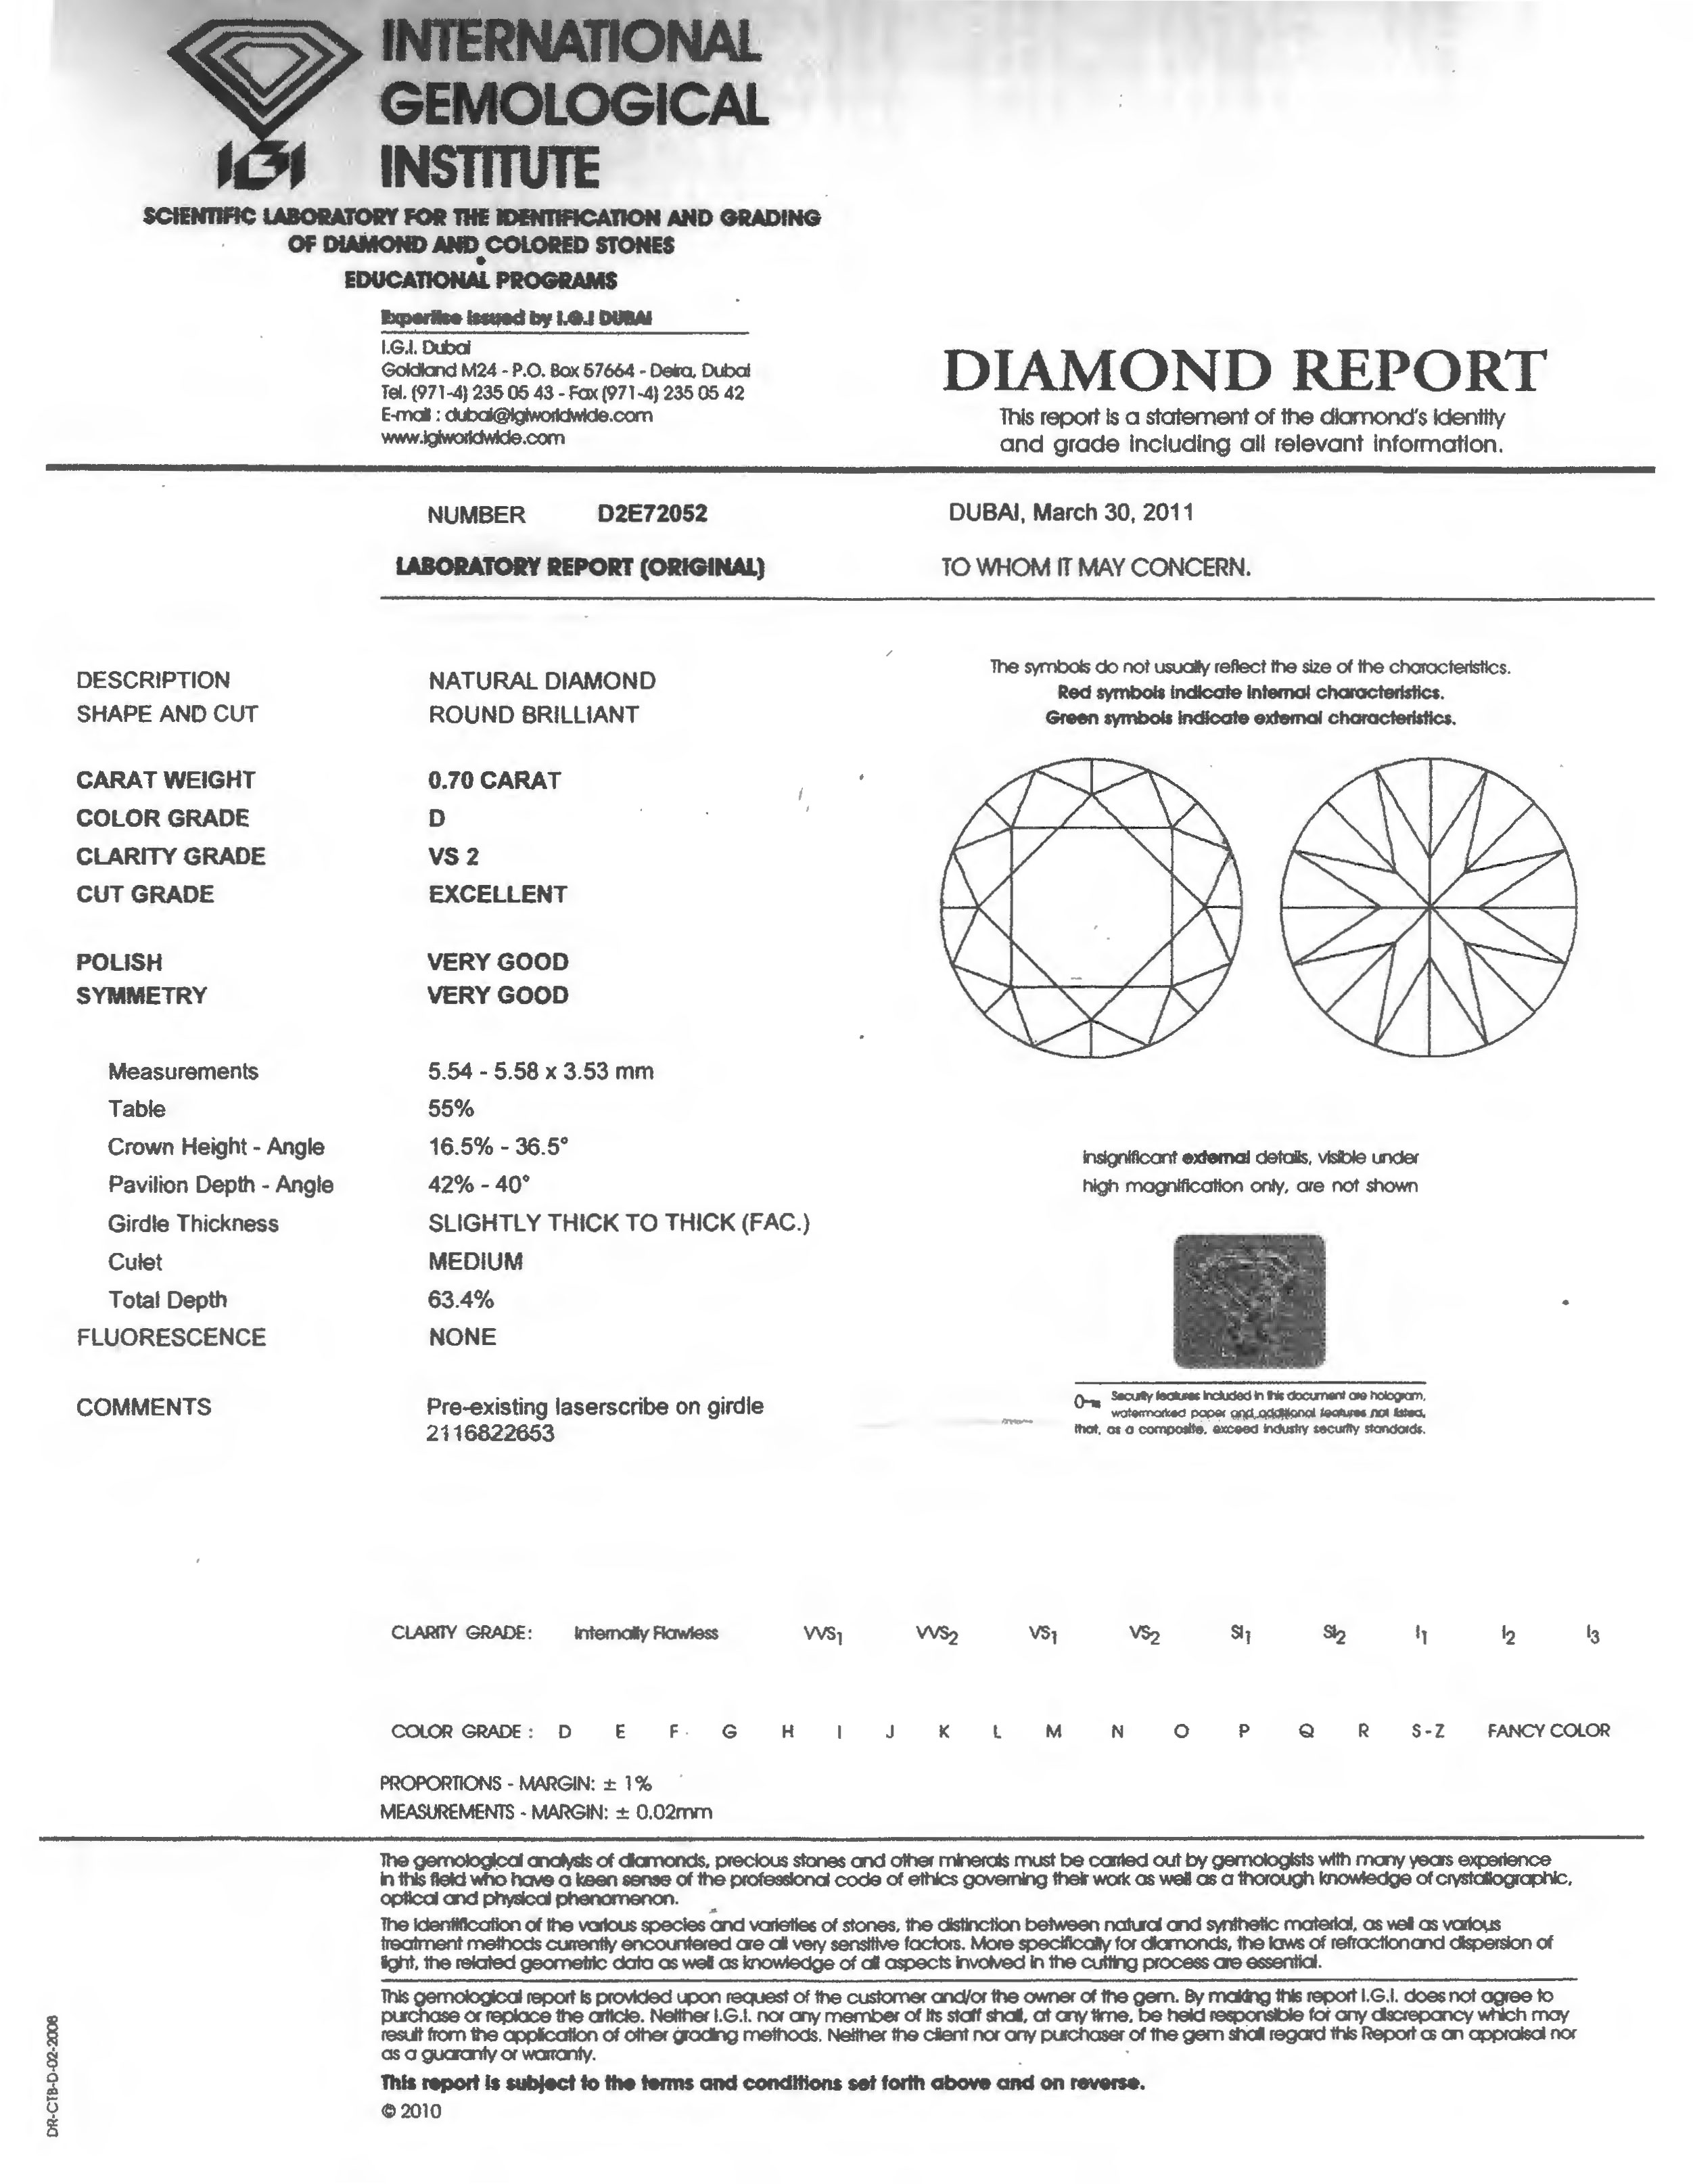 experience case grades gia right it image diamond of can fun shine shopping you jewelry broker diamonds and a hard at the grading arkansas to exciting from chose an one true be